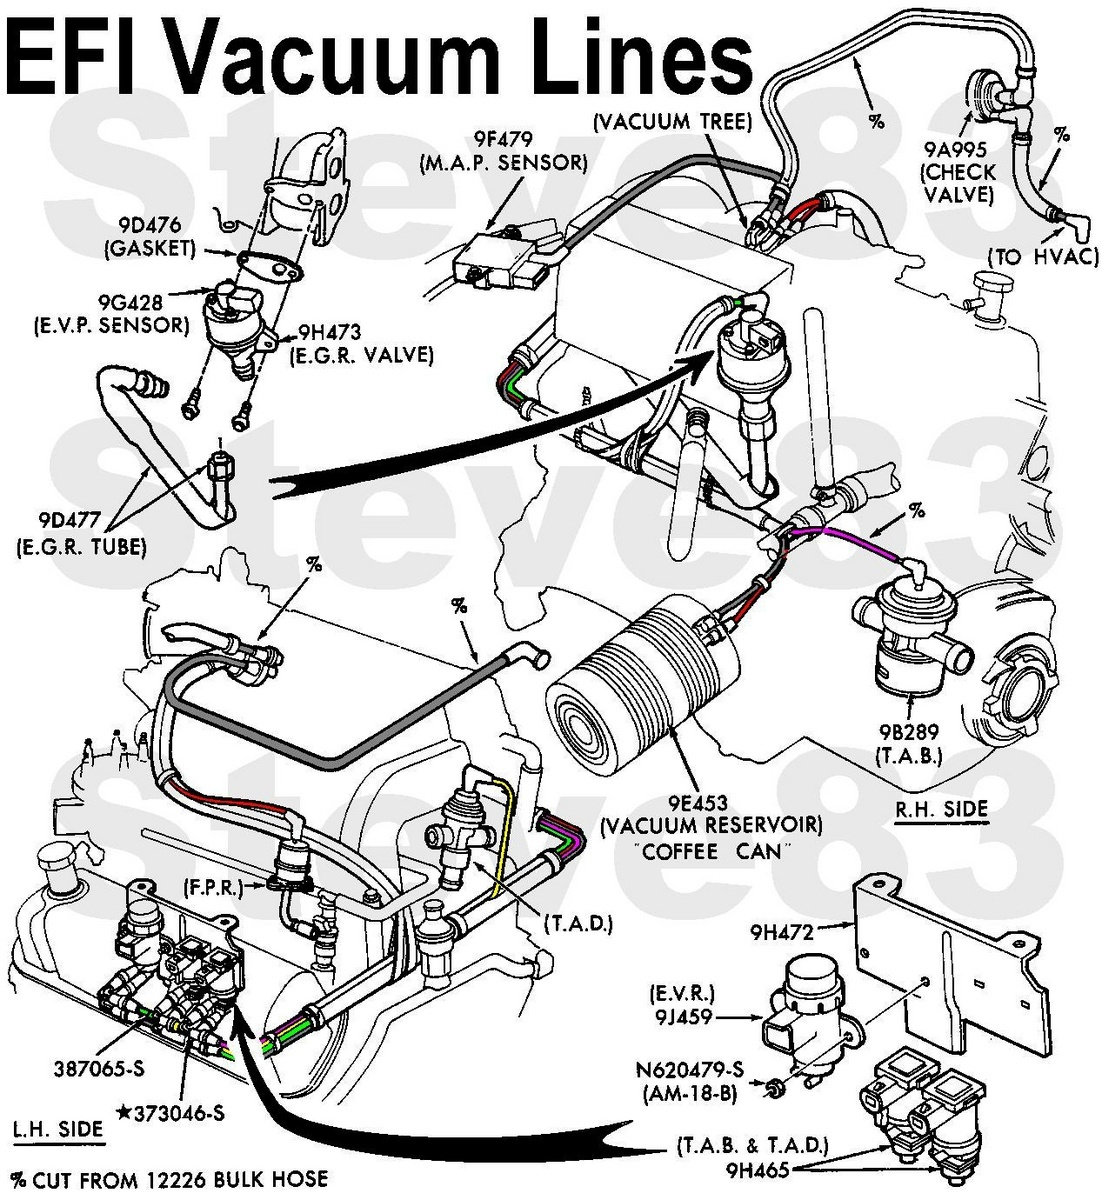 385093 Hose Name further 2004 F150 Ect Sensor Location furthermore Heater Hose Routing 3 4l 4runner W Rear Heater Asap Please 178656 additionally 04 Ford F150 Engine Diegram as well 2008 Ford F150 Evap Location. on 2004 expedition vacuum hoses 5 4l